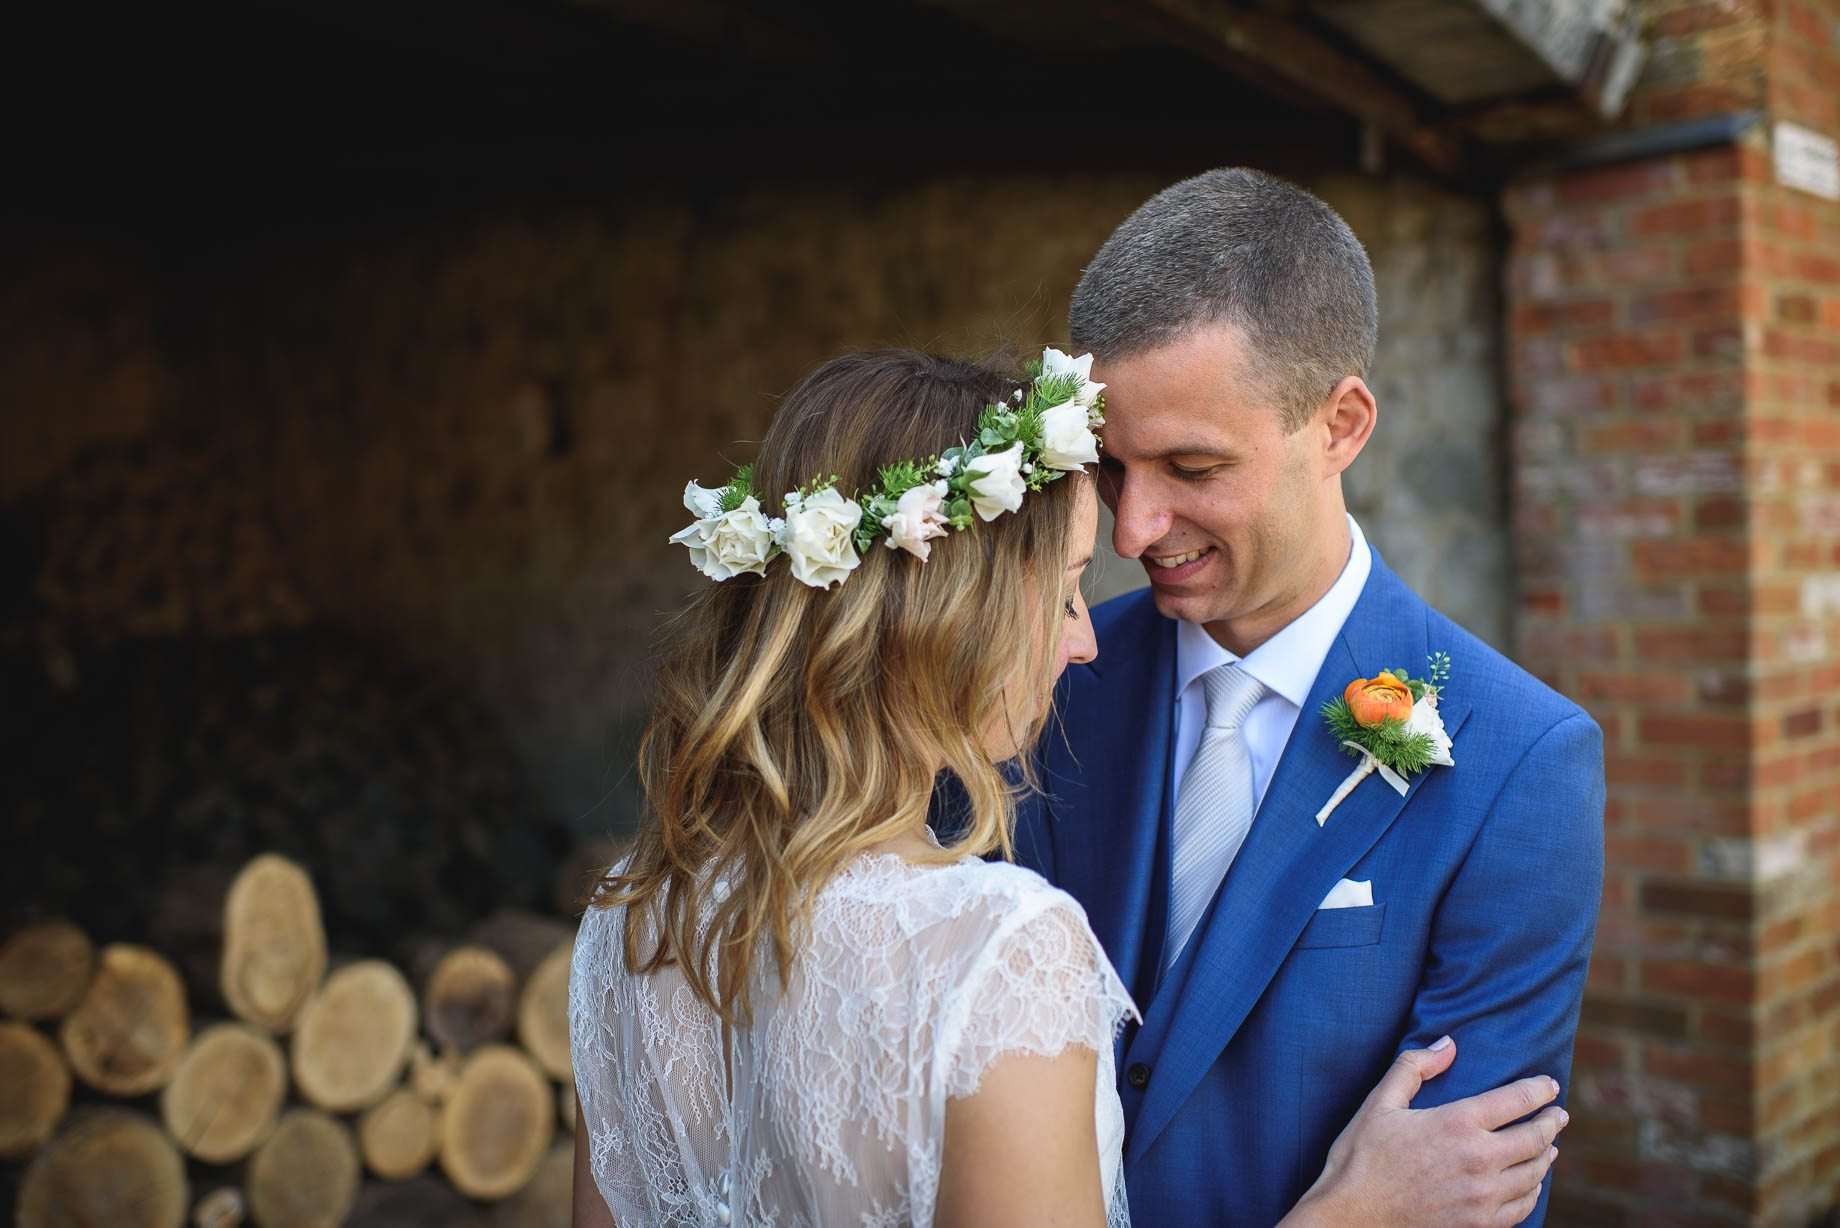 Bury Court Barn wedding photography by Guy Collier - Jo and Jamie (69 of 160)